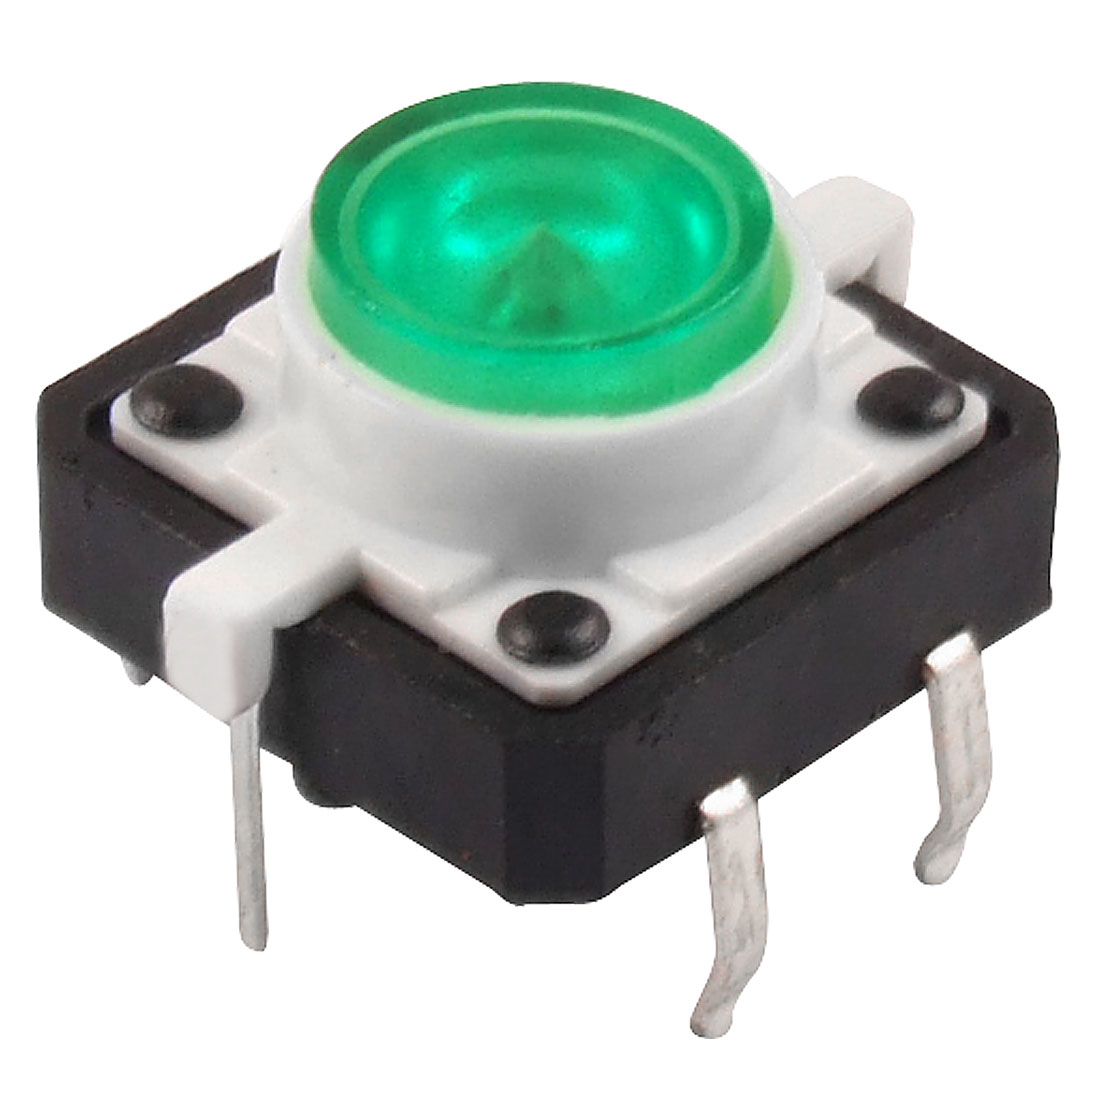 Green LED Light Momentary Tactile Tact Push Button Switch 12 x 12mm x 11mm DIP